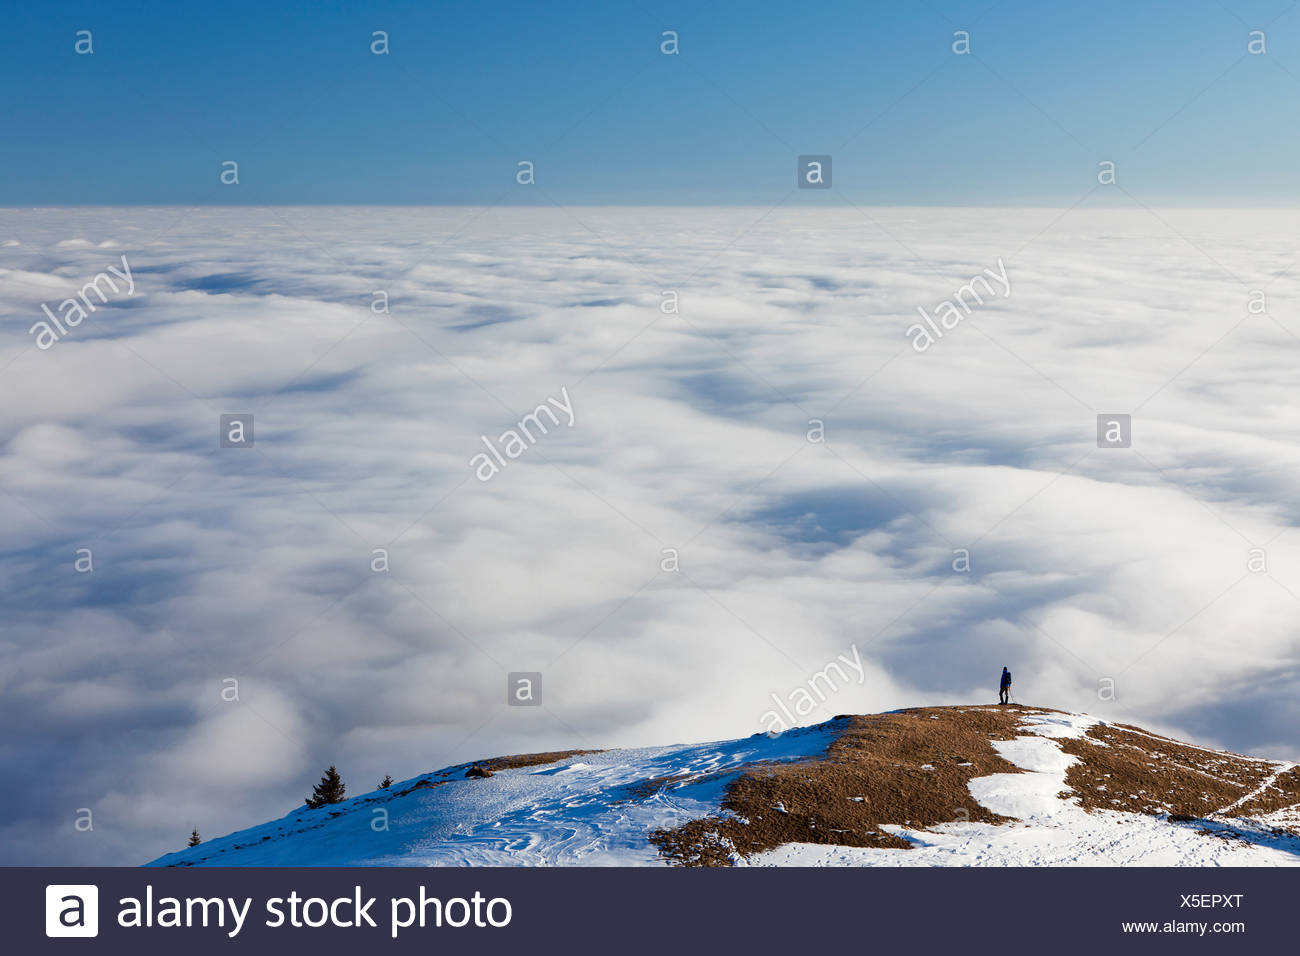 Lonely hiker walking above a sea of fog, low clouds, on Faehnerenspitze mountain in the Appenzell region, Switzerland, Europe Stock Photo